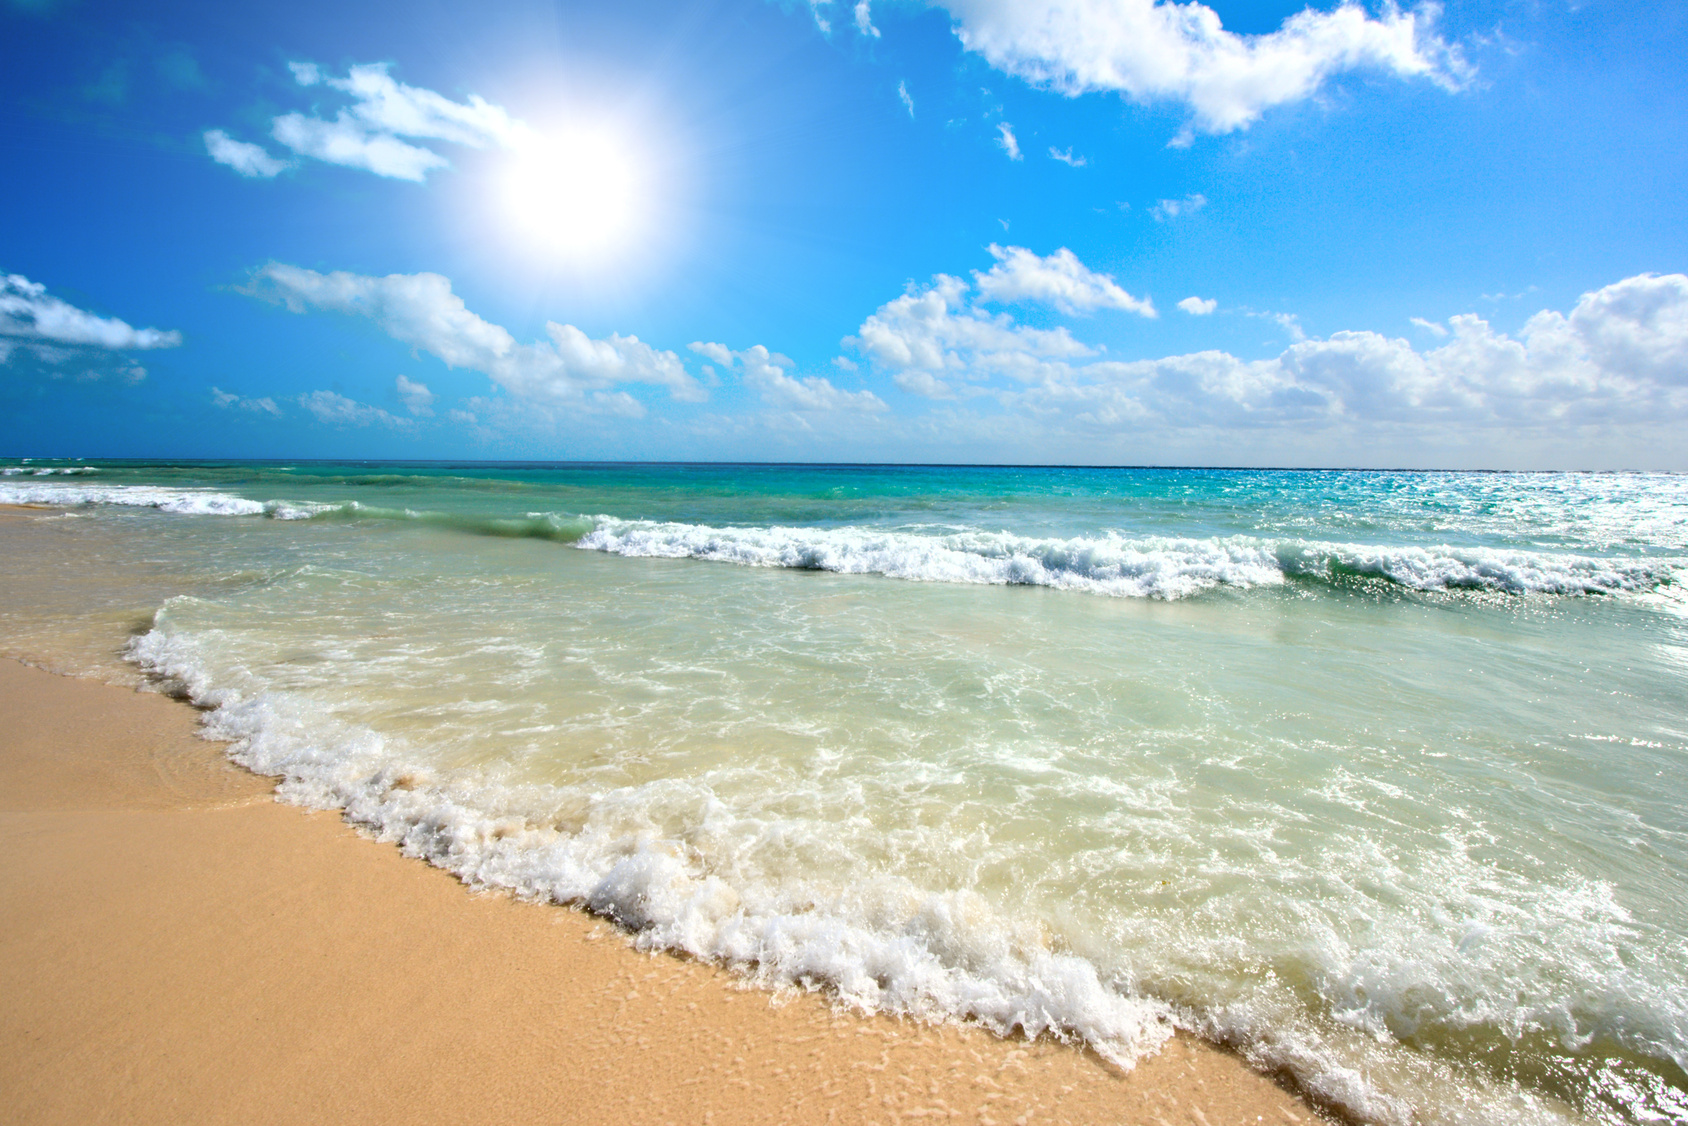 Ocean Waves on a Beach